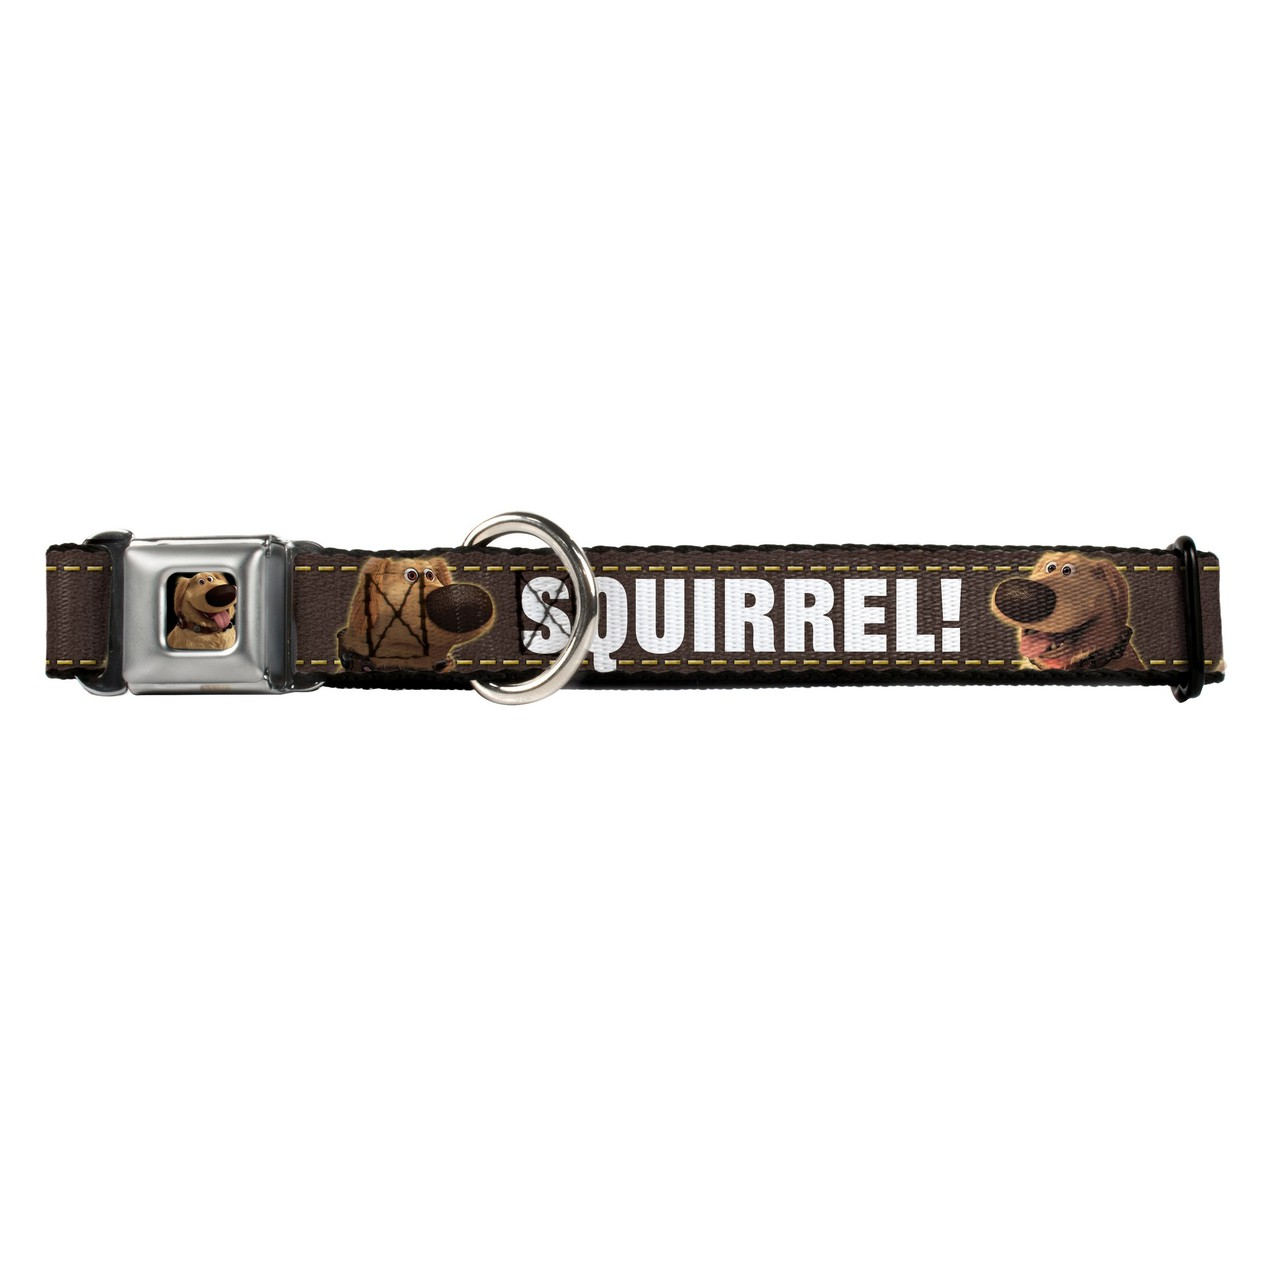 Hot Dog Dug Tongue Out Squirrel Buckle-Down Seat Belt Buckle Dog Collar